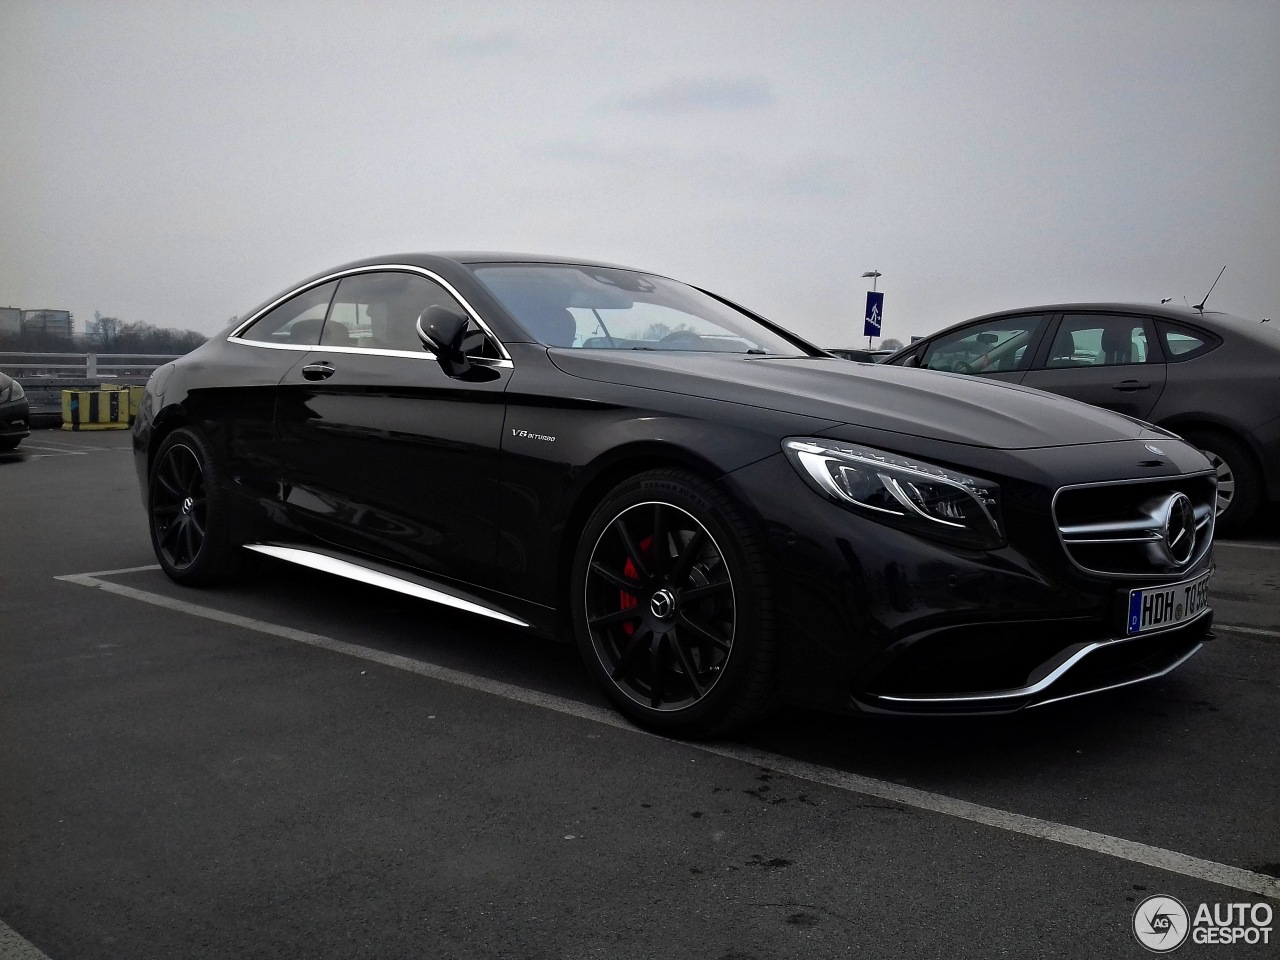 Mercedes benz s 63 amg coup c217 17 may 2017 autogespot for Mercedes benz s 63 amg